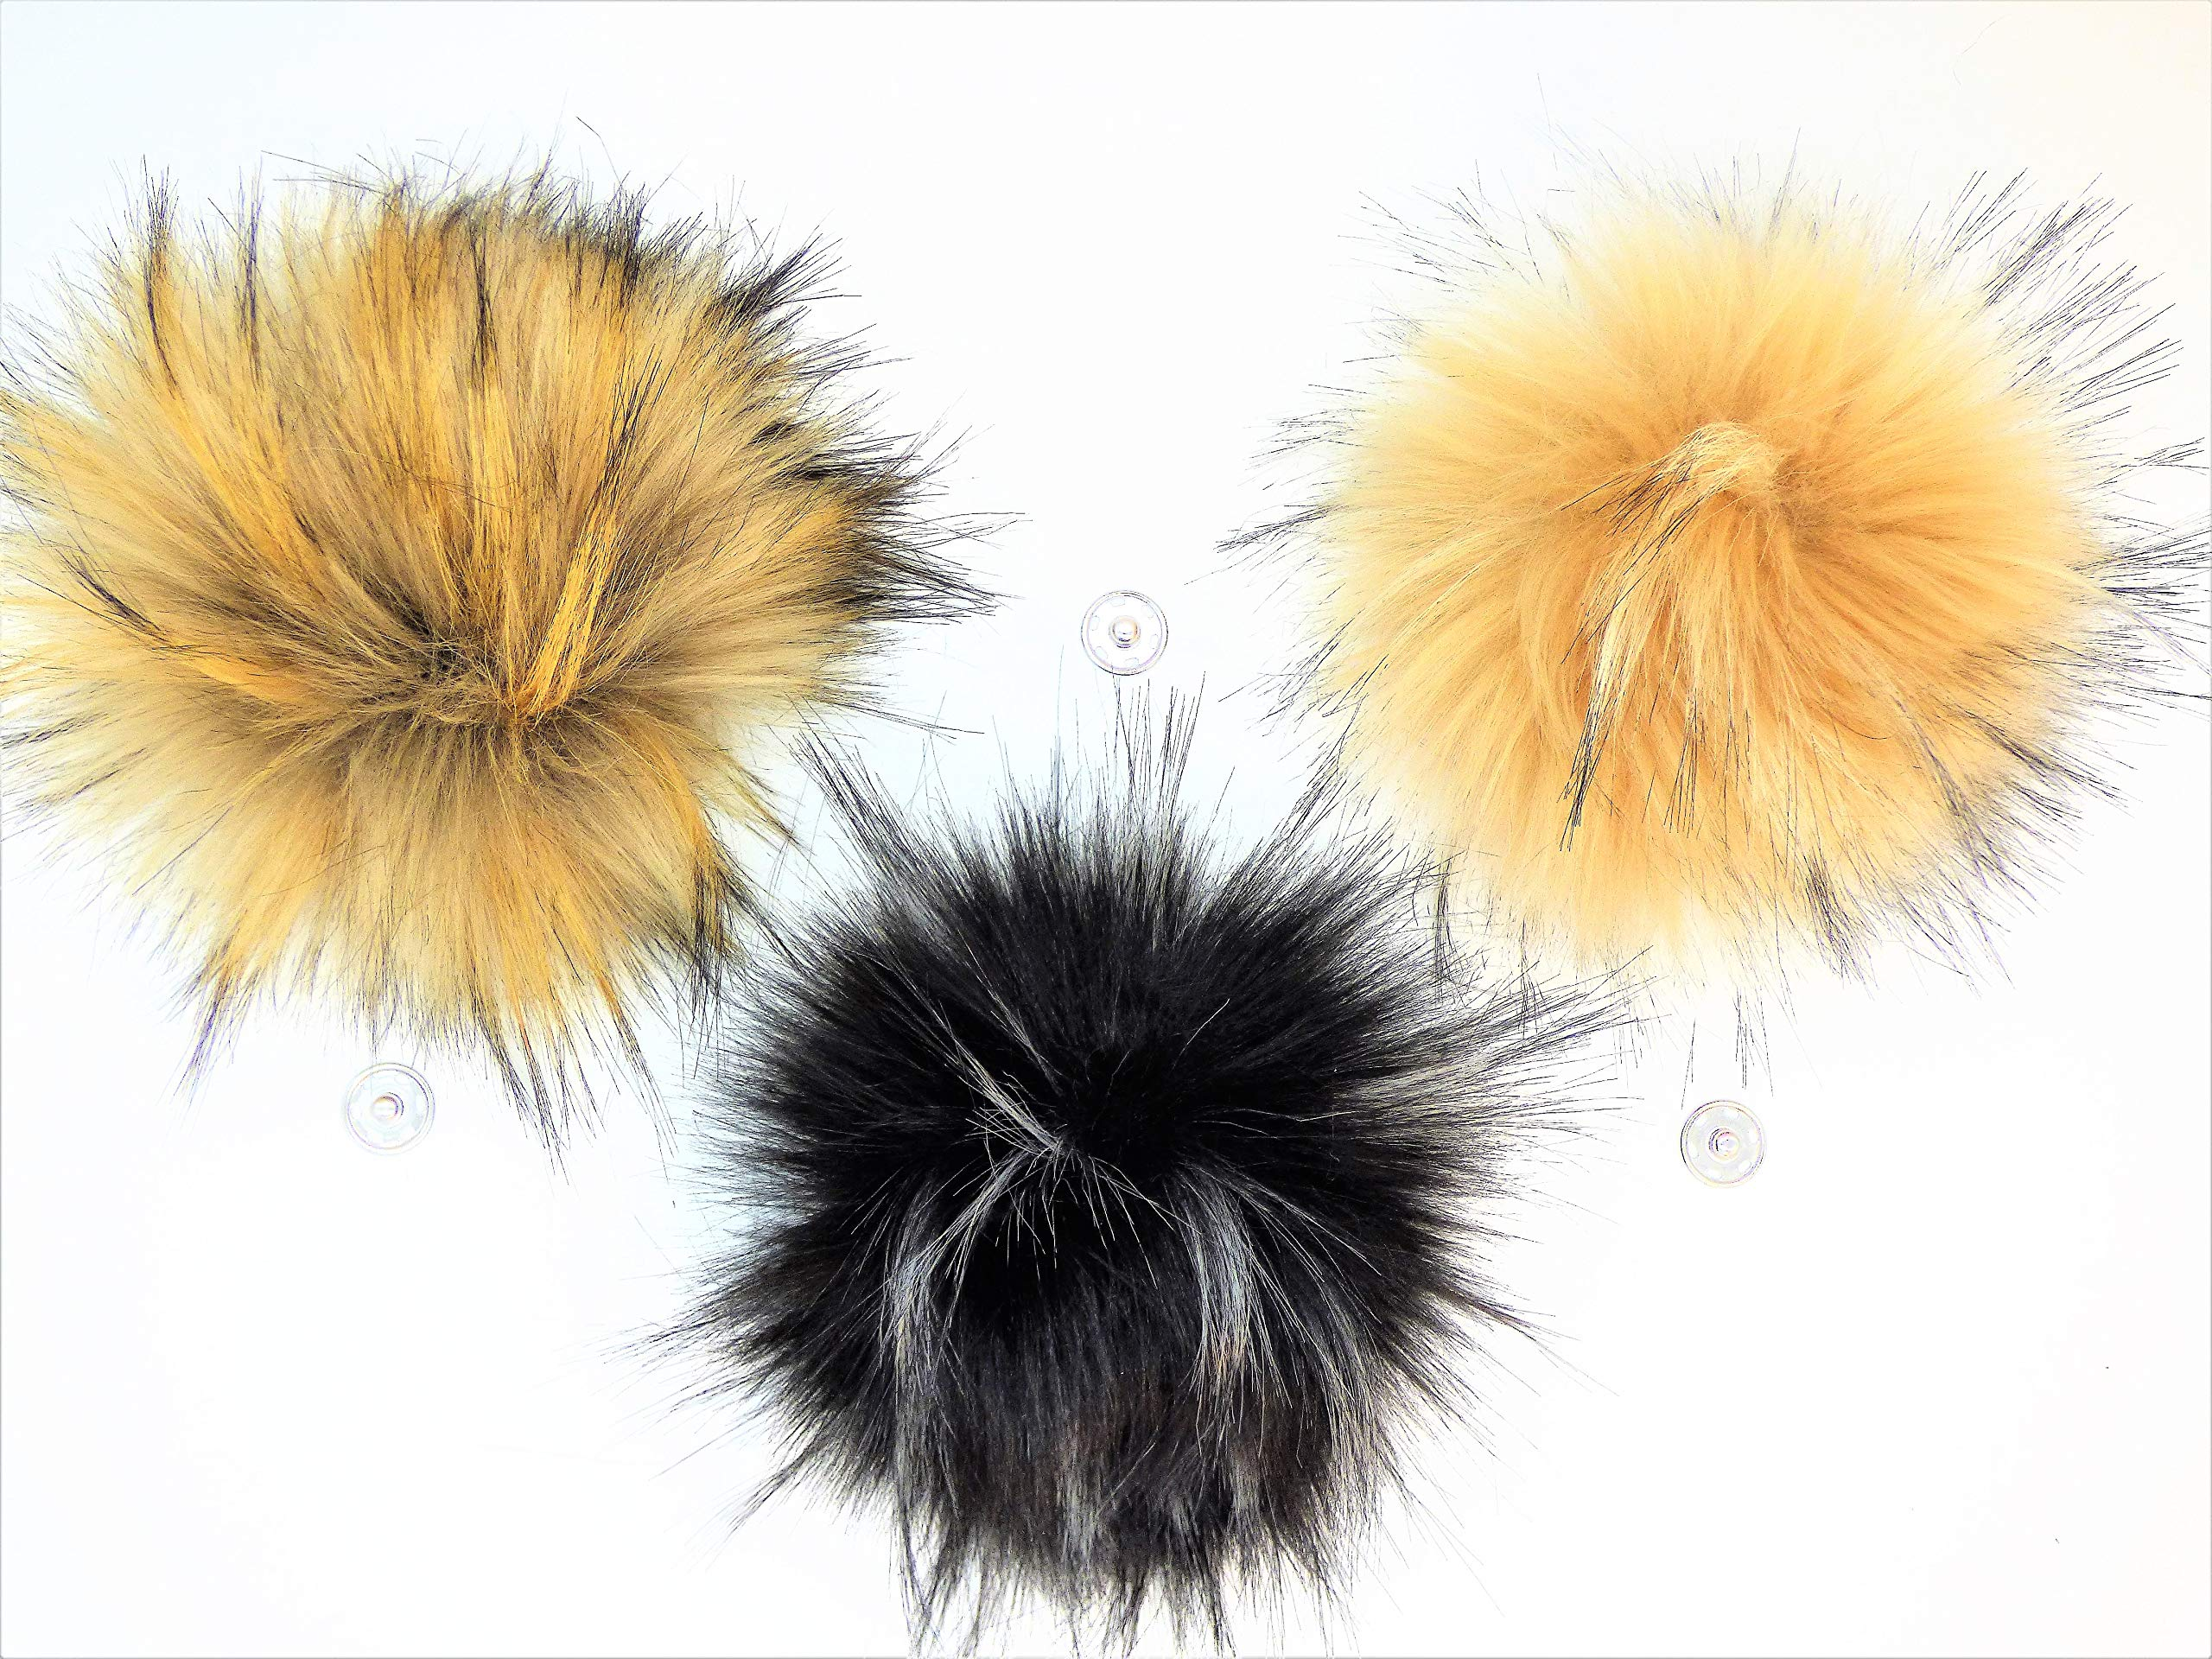 Faux Fur Pom Pom Balls | Extra Large {5-6 INCHES} Set of 3 Removable Pompoms with Snaps for Knitting Accessories | DIY Hats and Crafts | Neutral Assortment by Haven-Sent